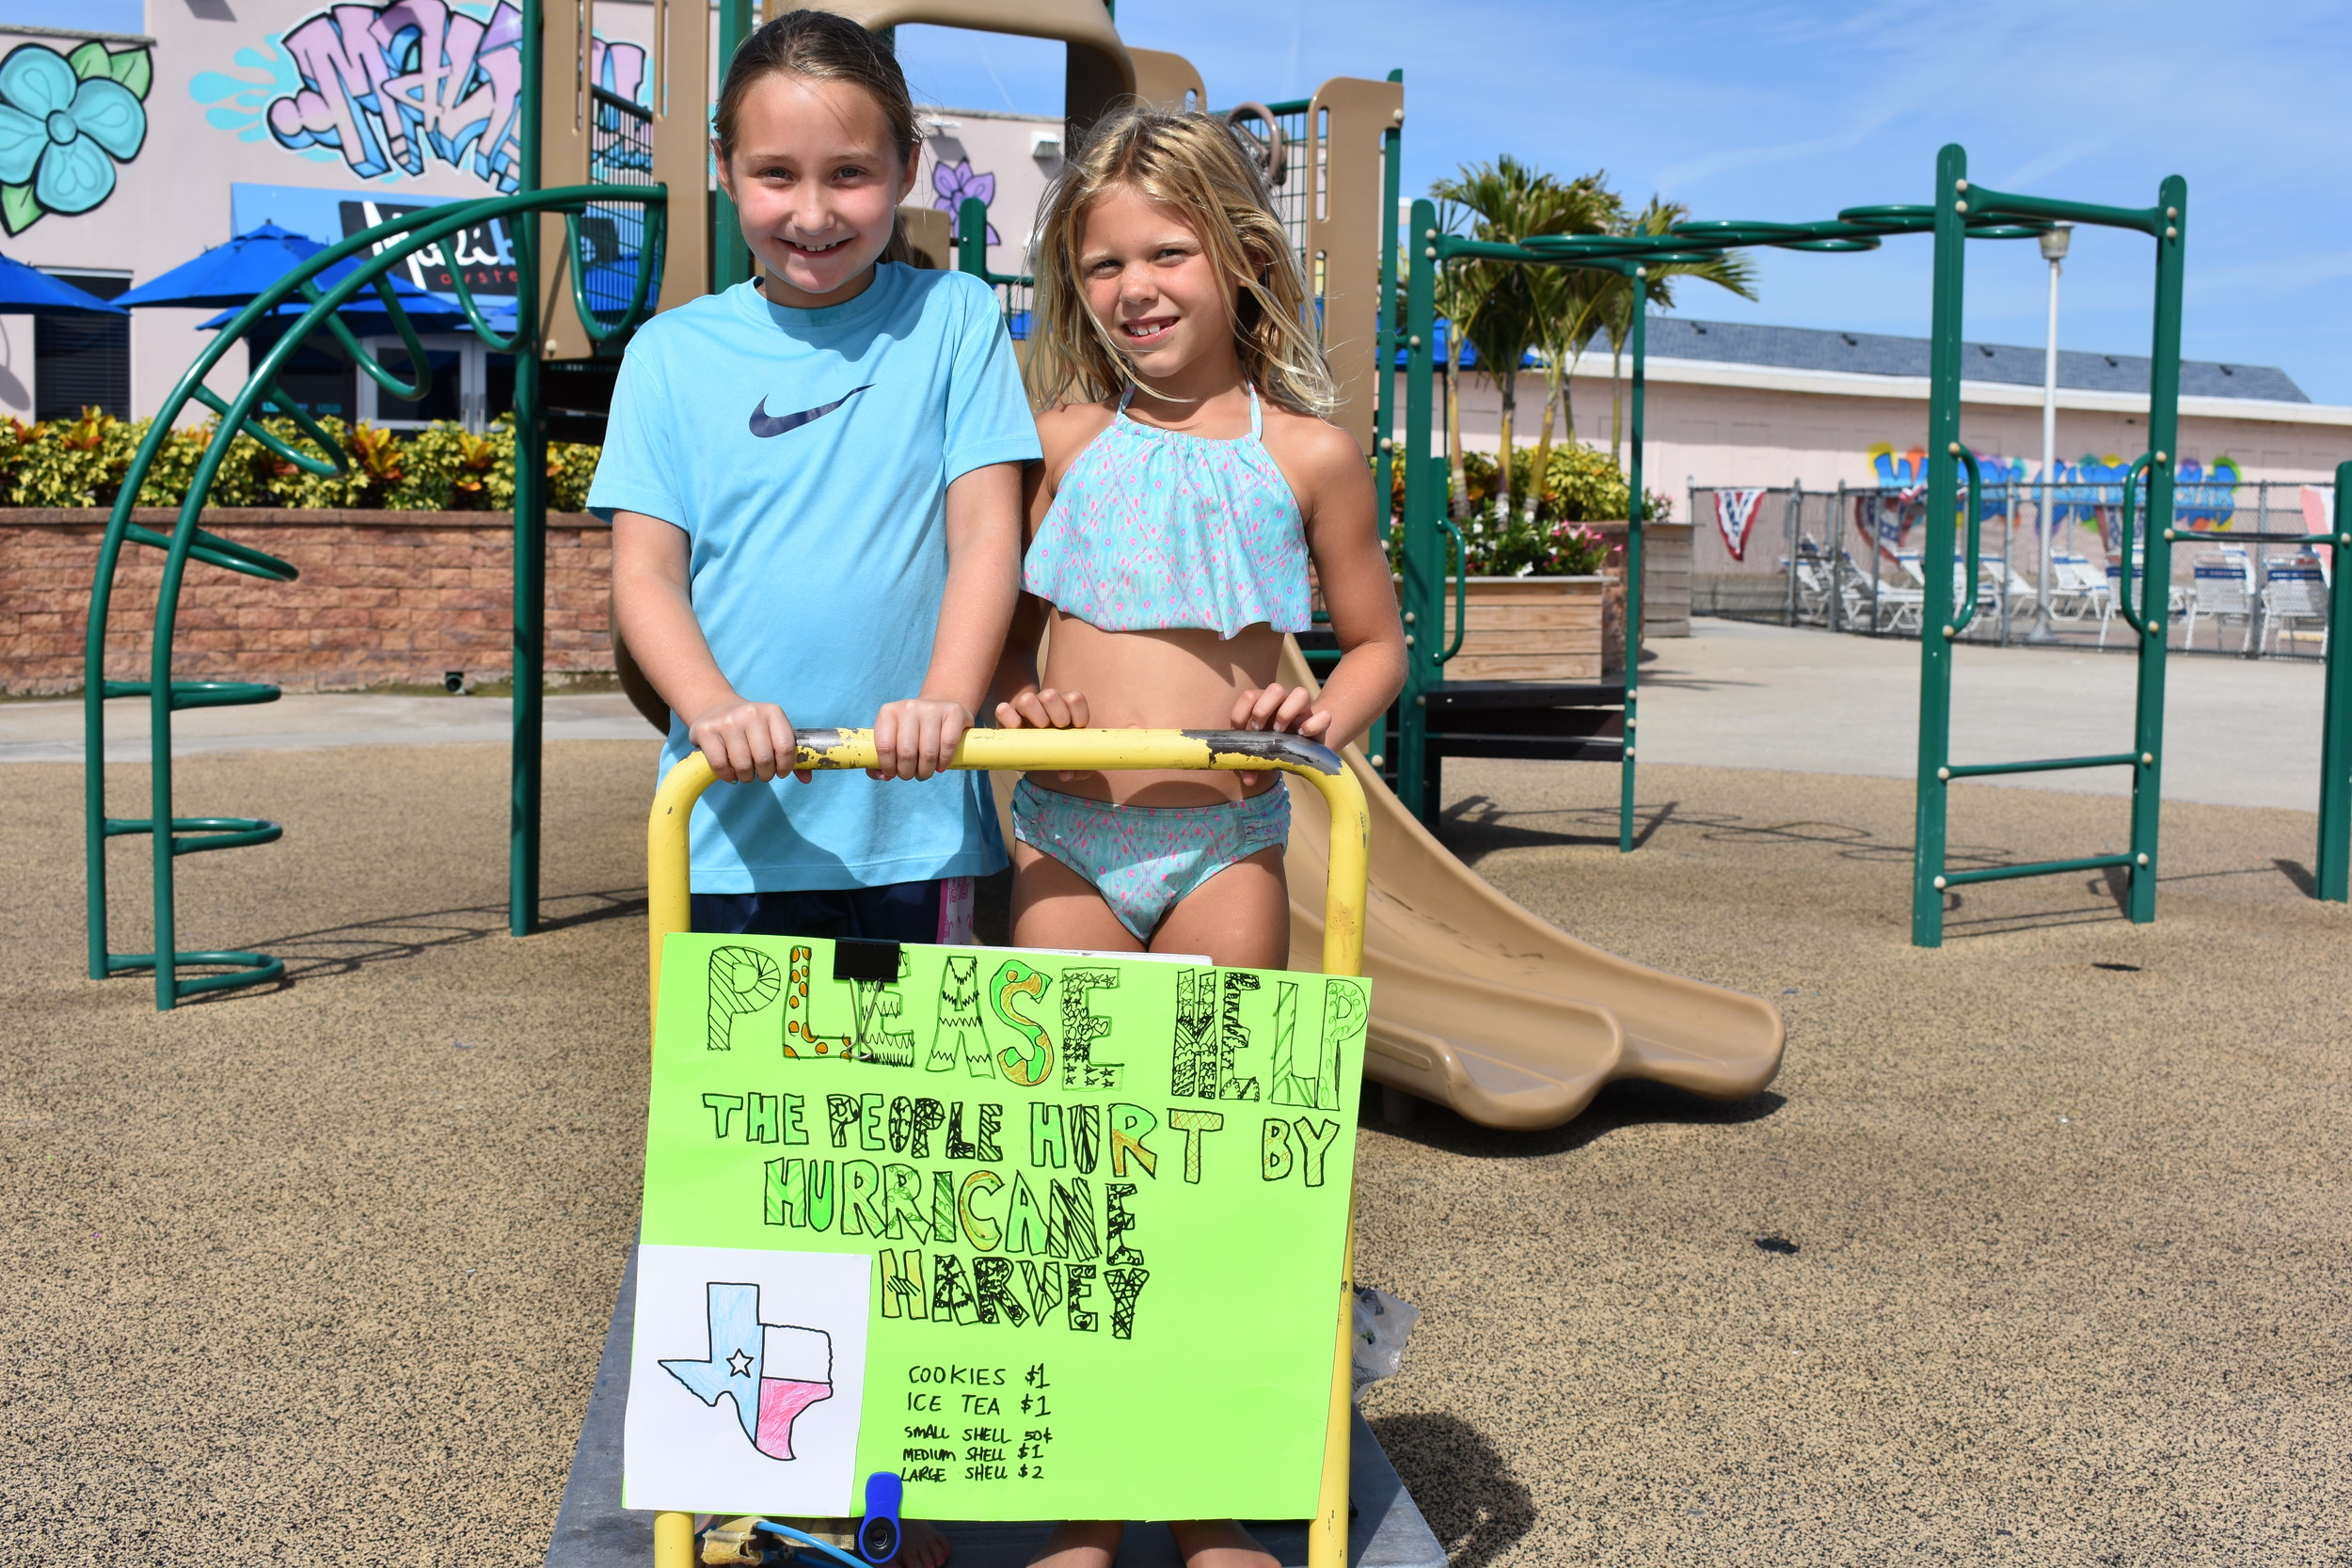 Rockville Centre resident  Kiersten Brull, 7, right, with her friend Maeve Martin, raised money for Hurricane Harvey victims by selling seashells, iced tea and cookies.